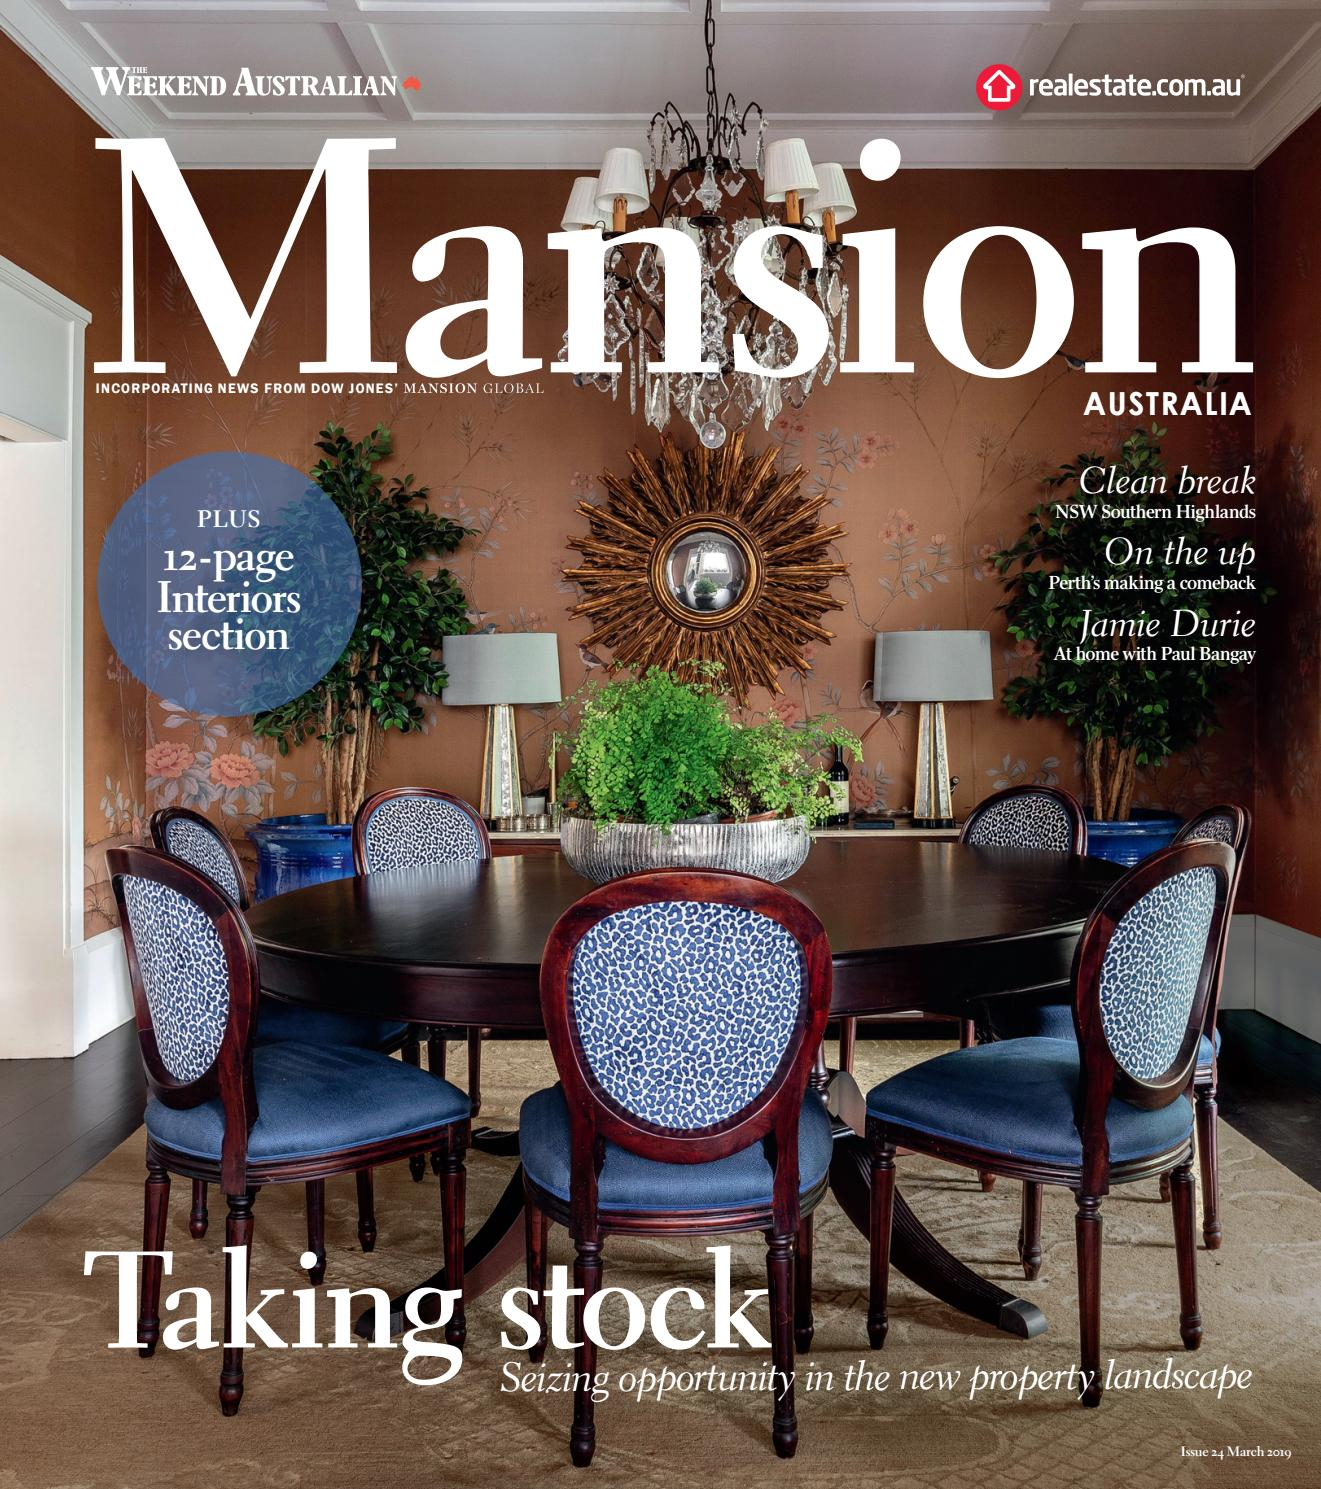 majestic interiors pany profile interior designers in online interior design firms Mansion March 2019 by The Australian - issuu